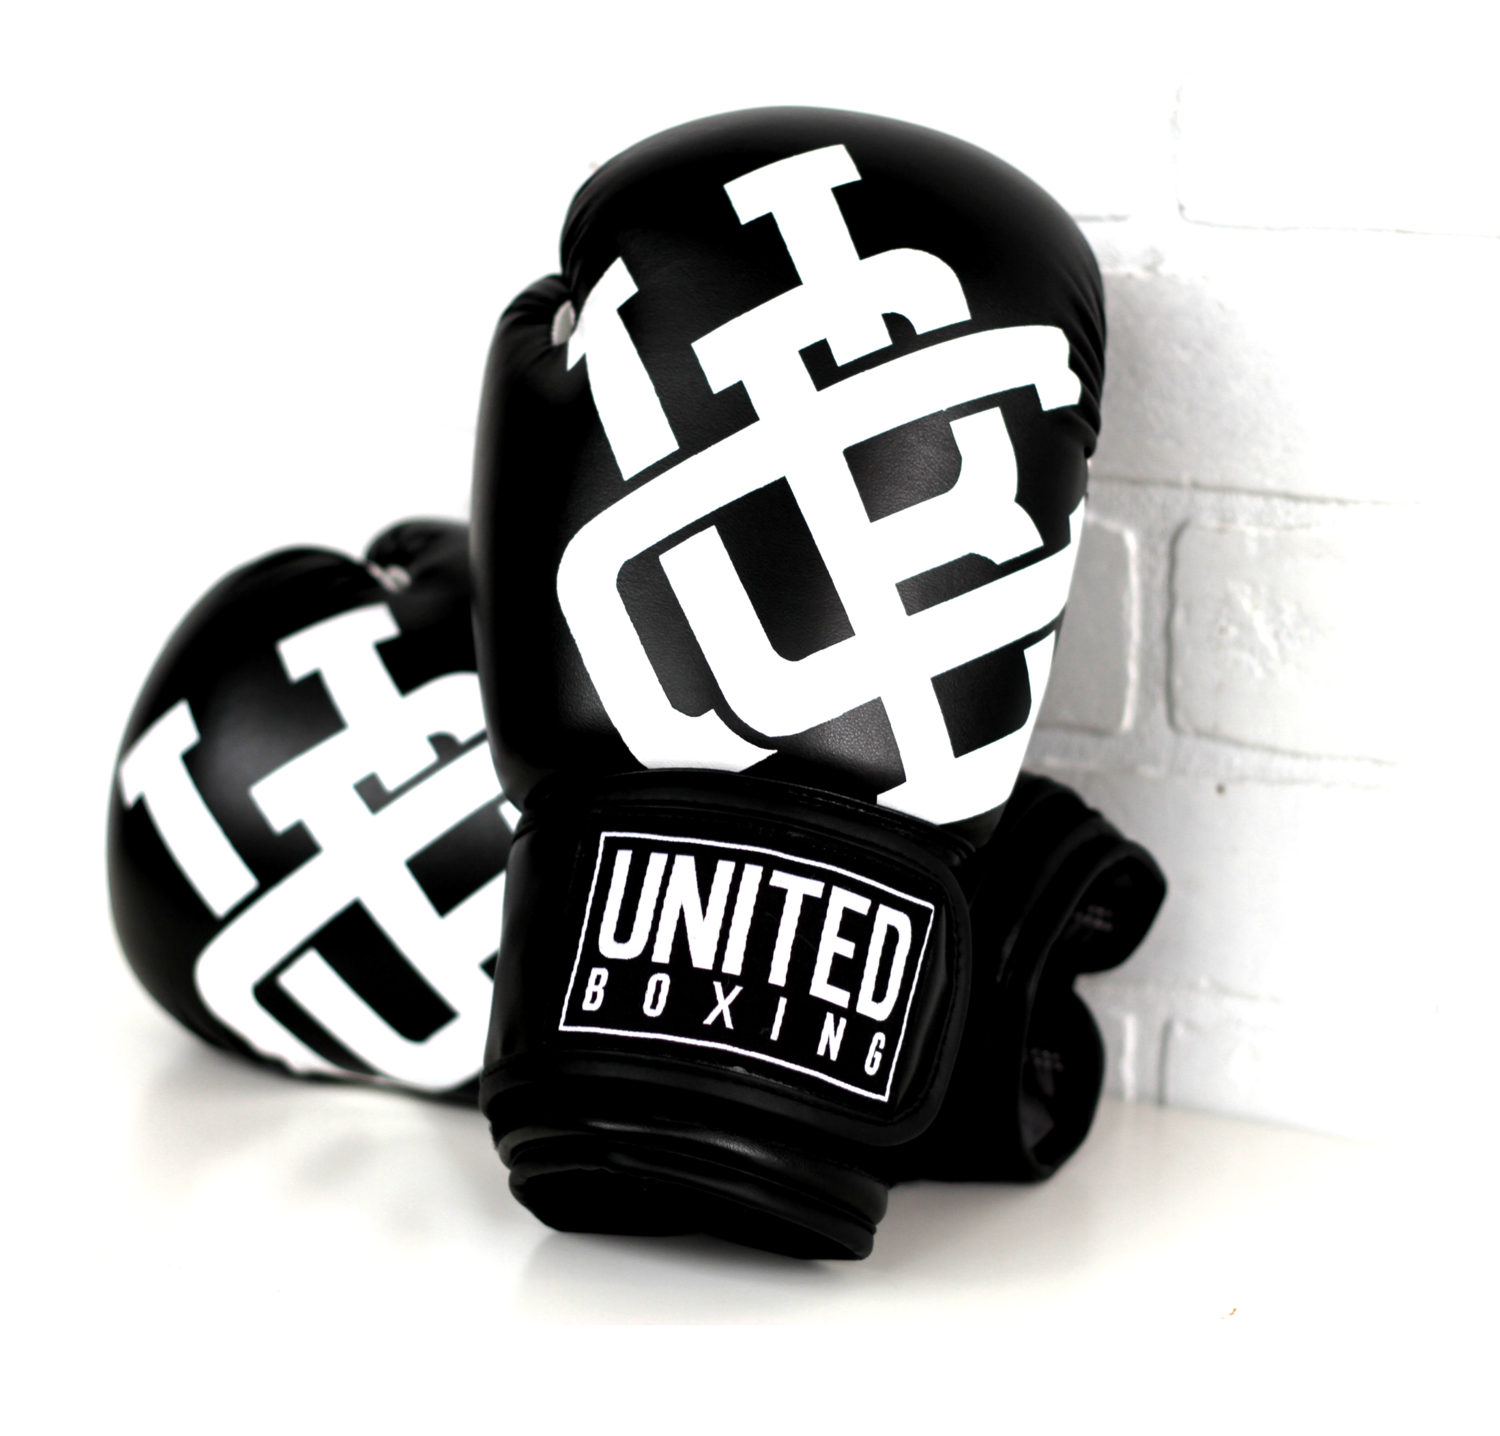 BOXING GEAR - High Quality Boxing Equipment